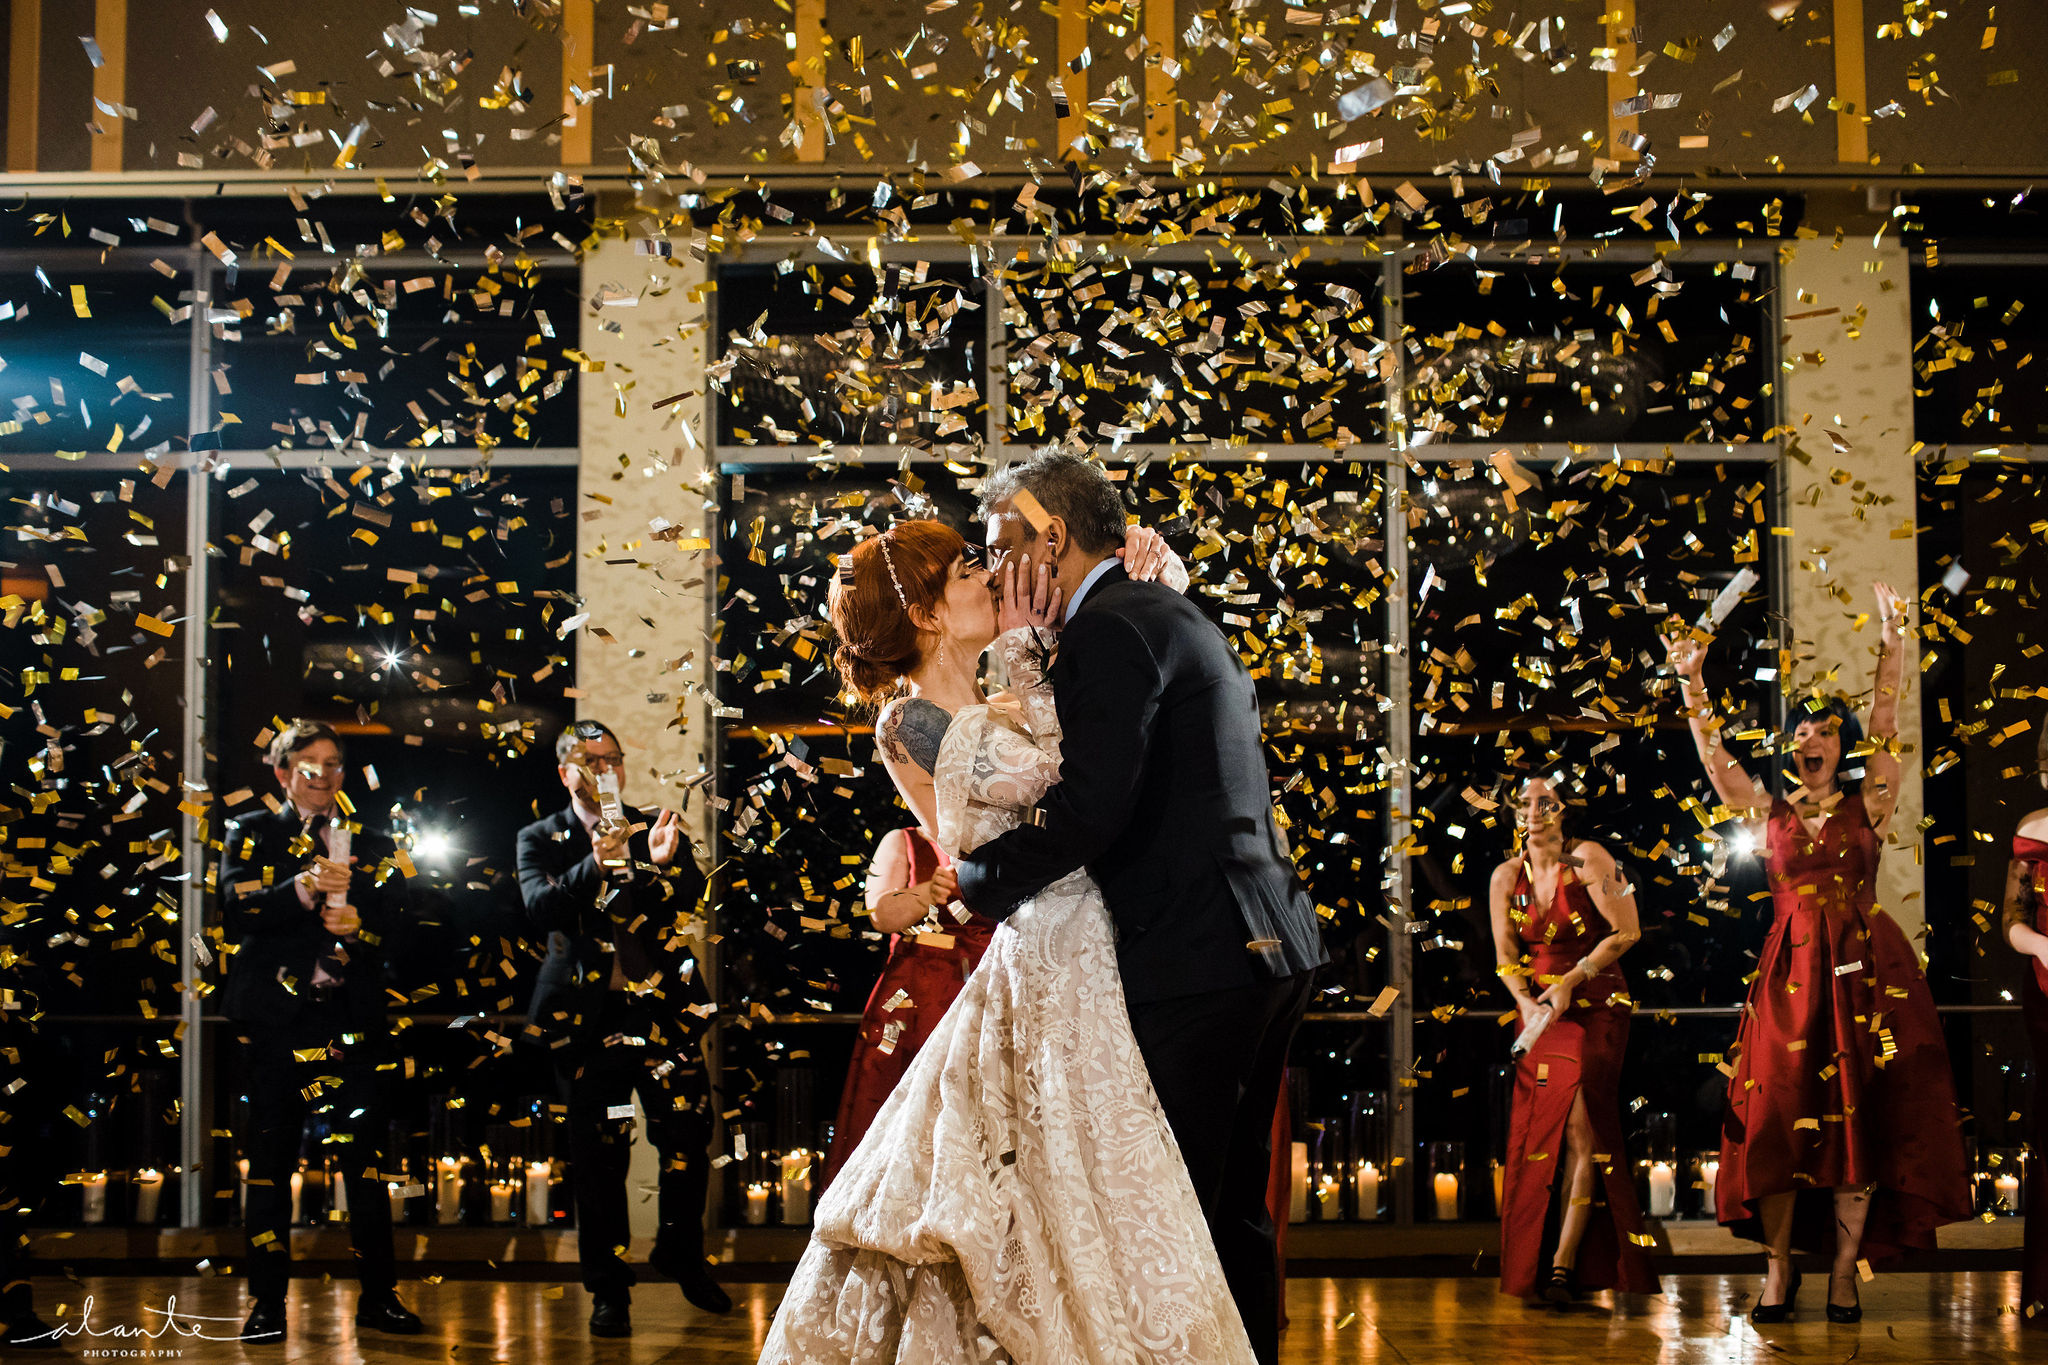 Confetti cannon explodes with gold confetti over bride and groom at their winter reception.